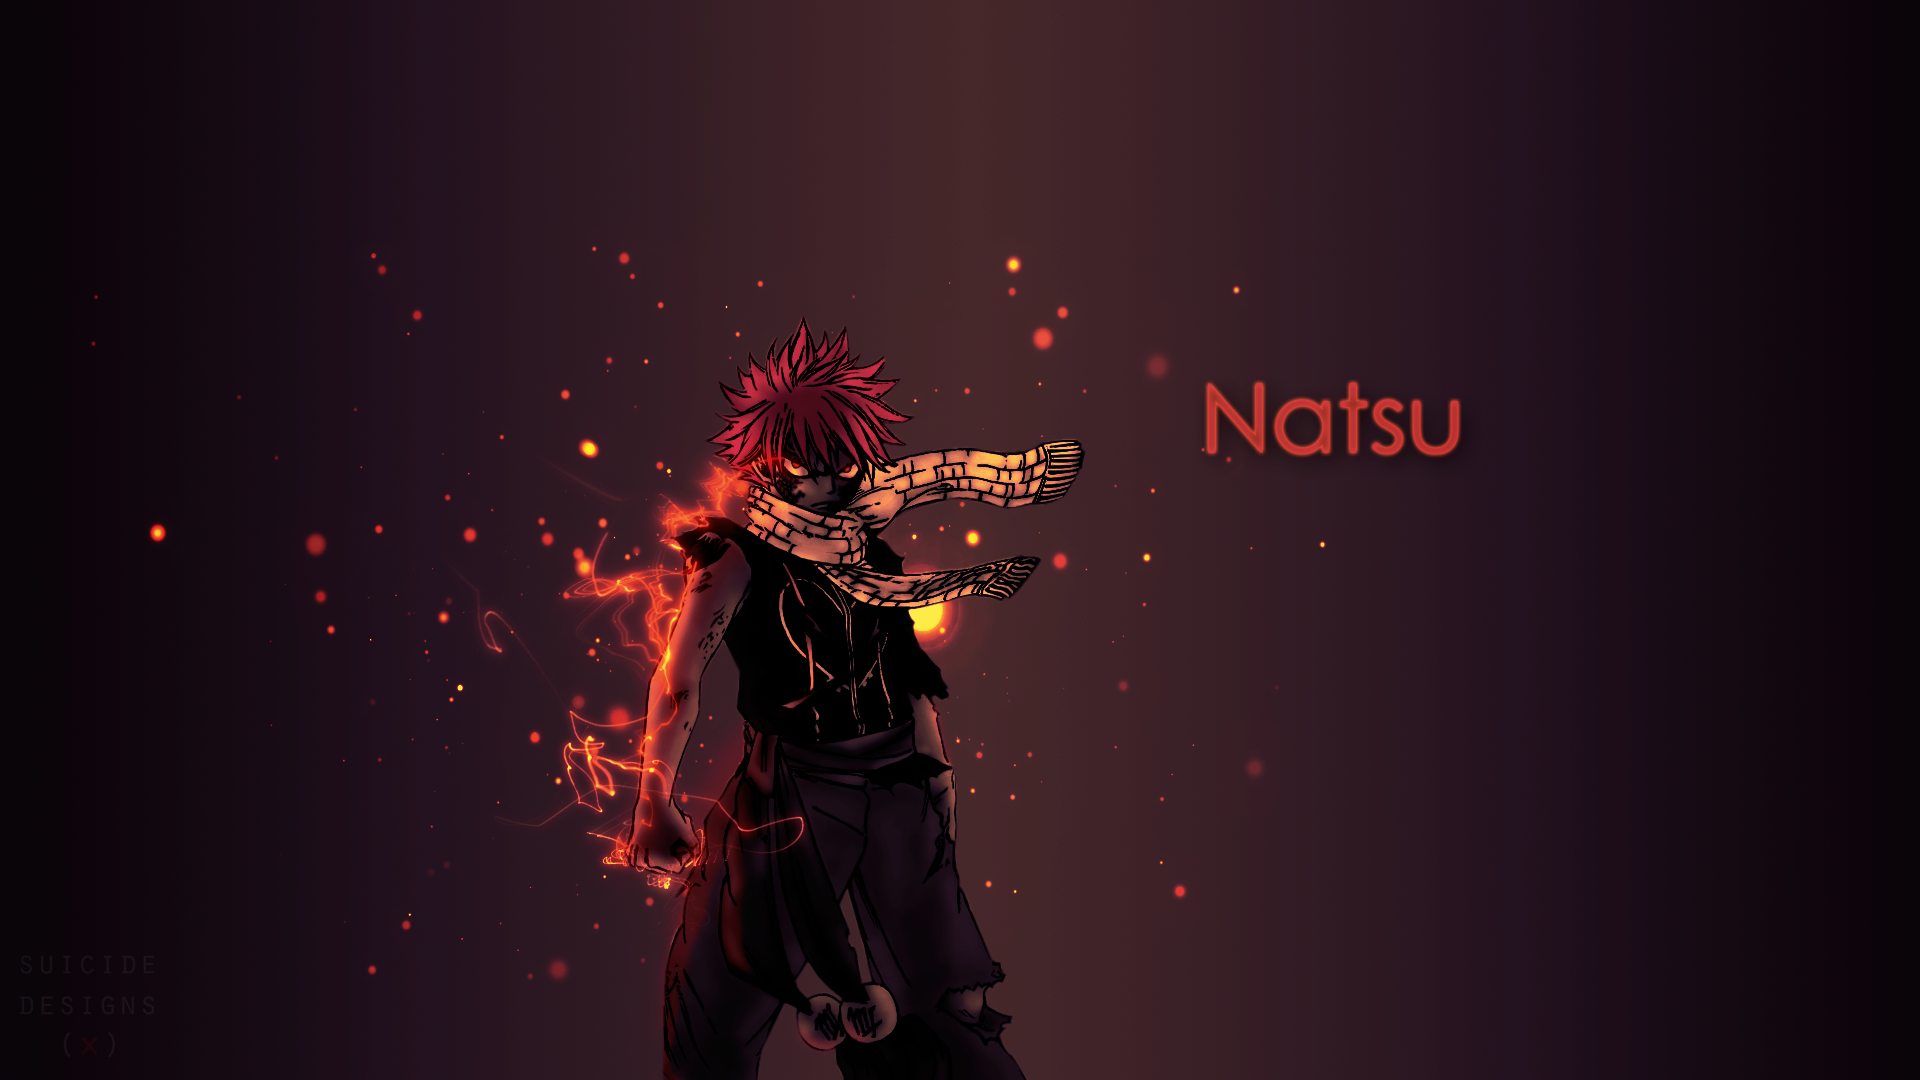 natsu wallpaper by spicedesings on deviantart